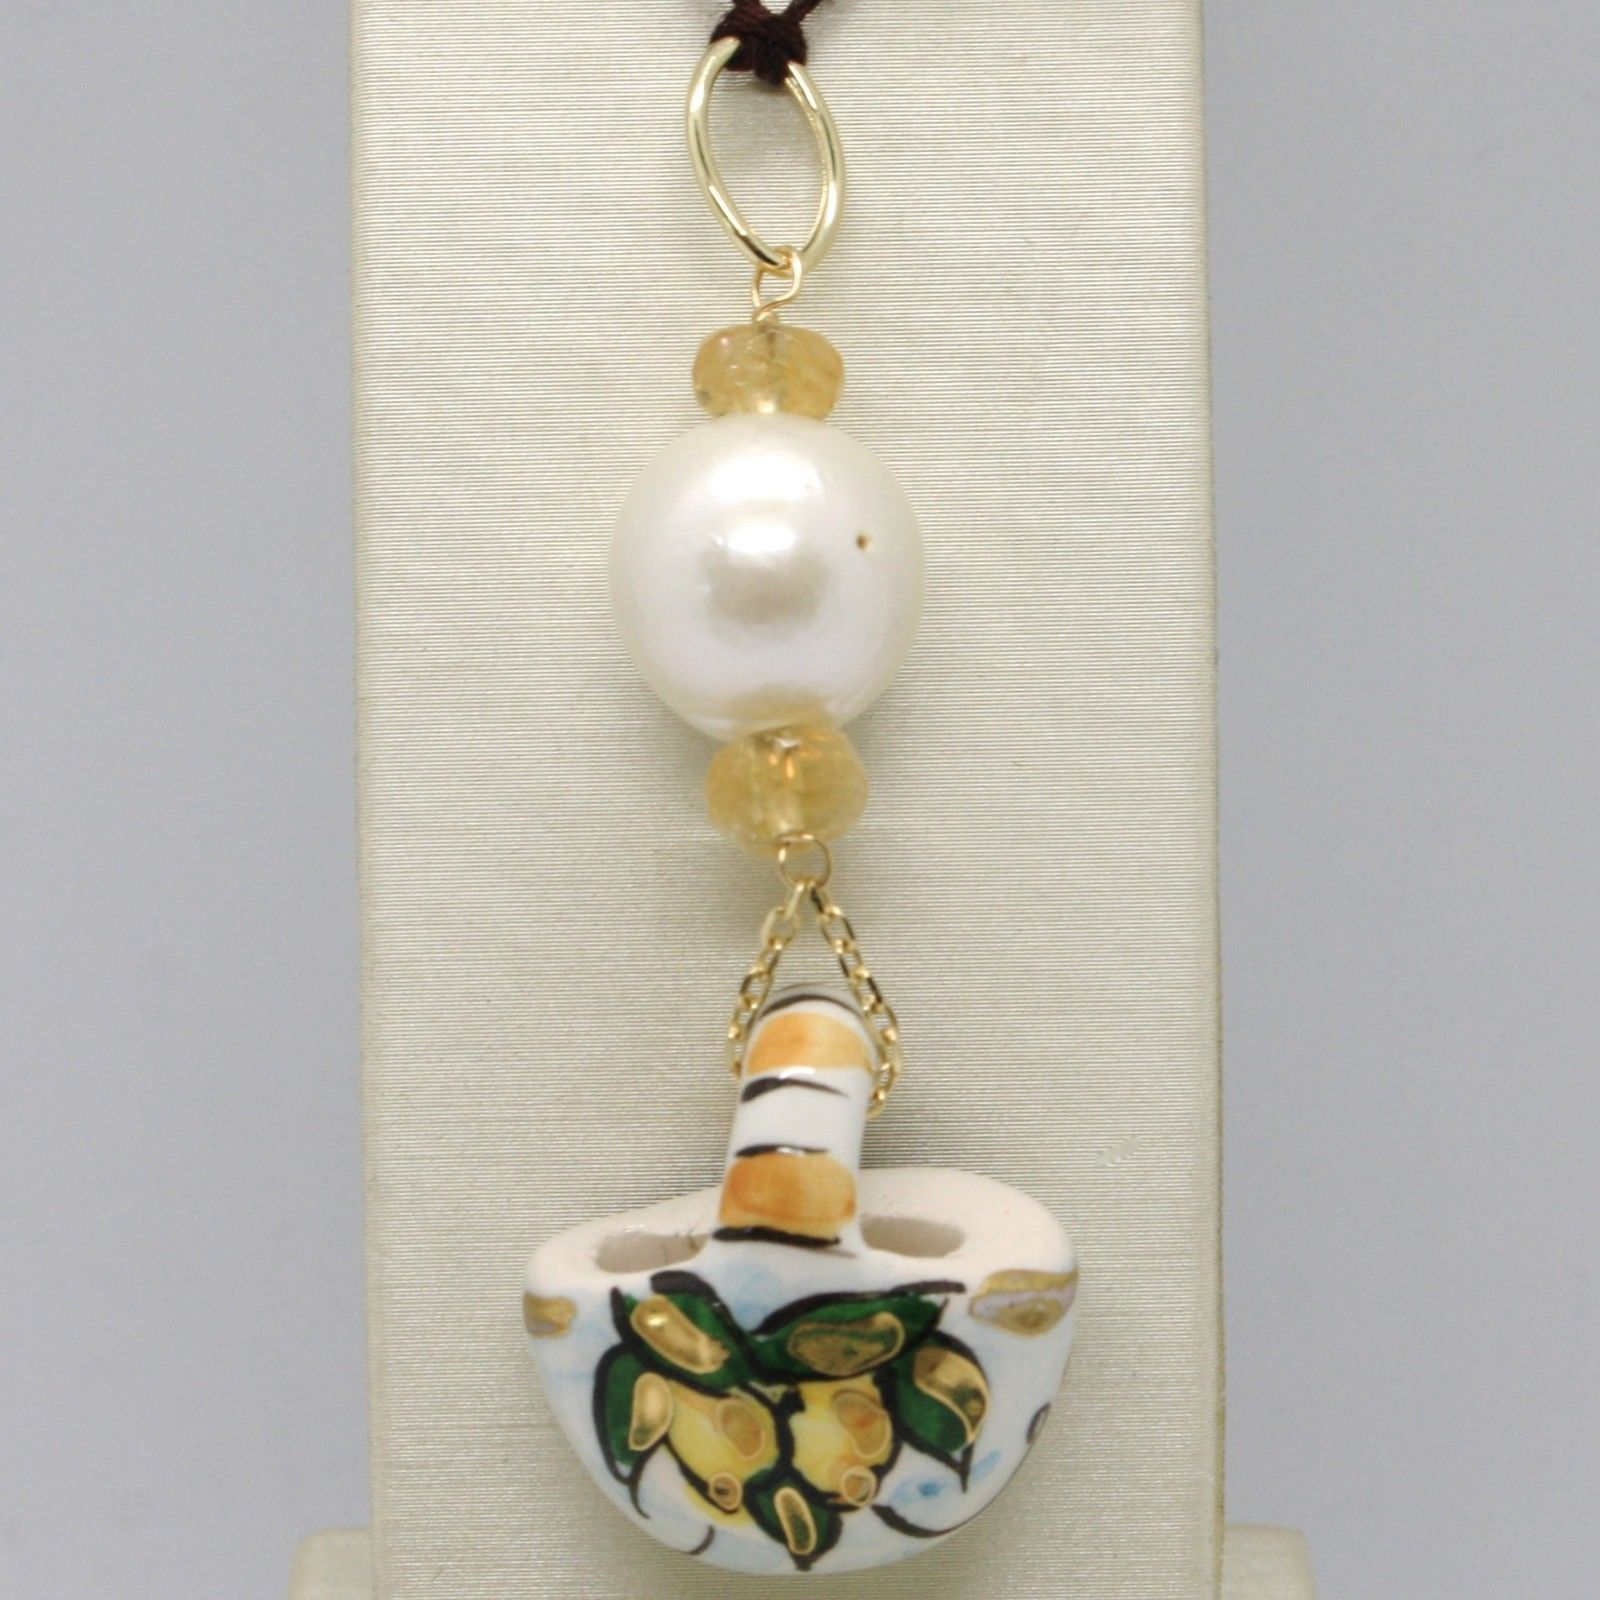 18K YELLOW GOLD PENDANT CITRINE, PEARL & CERAMIC LEMON BAG HAND PAINTED IN ITALY